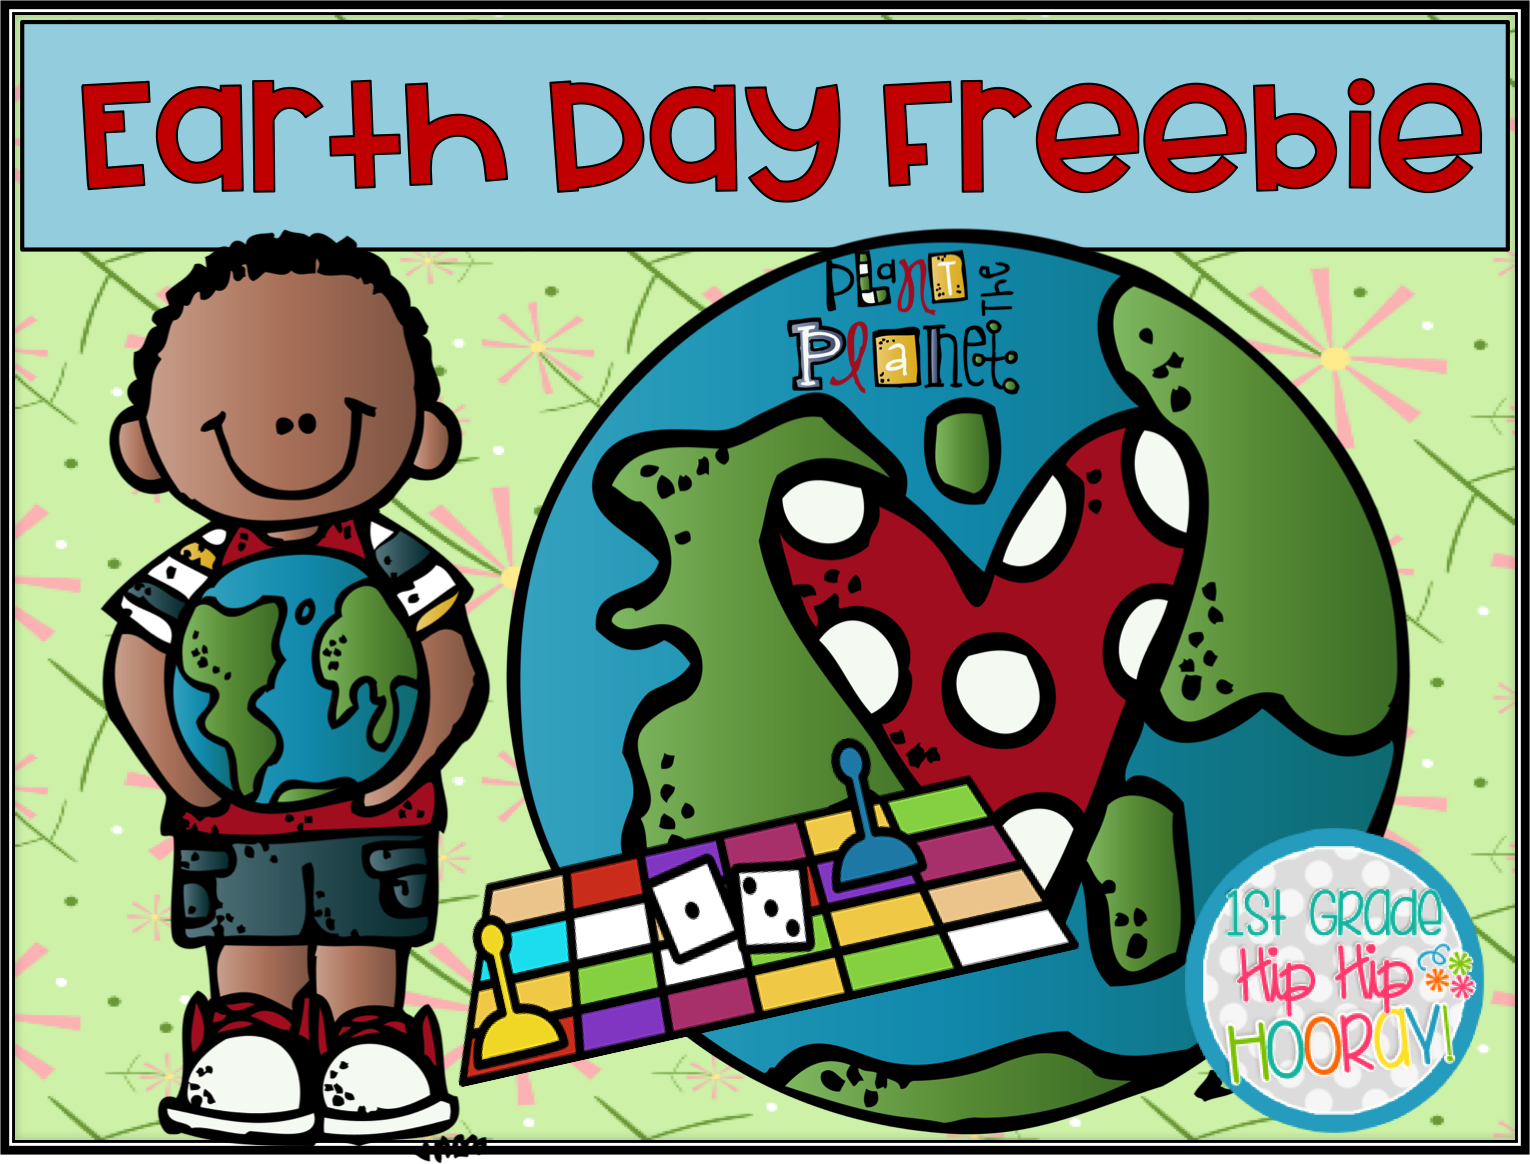 1st Grade Hip Hip Hooray Two Earth Day Freebies